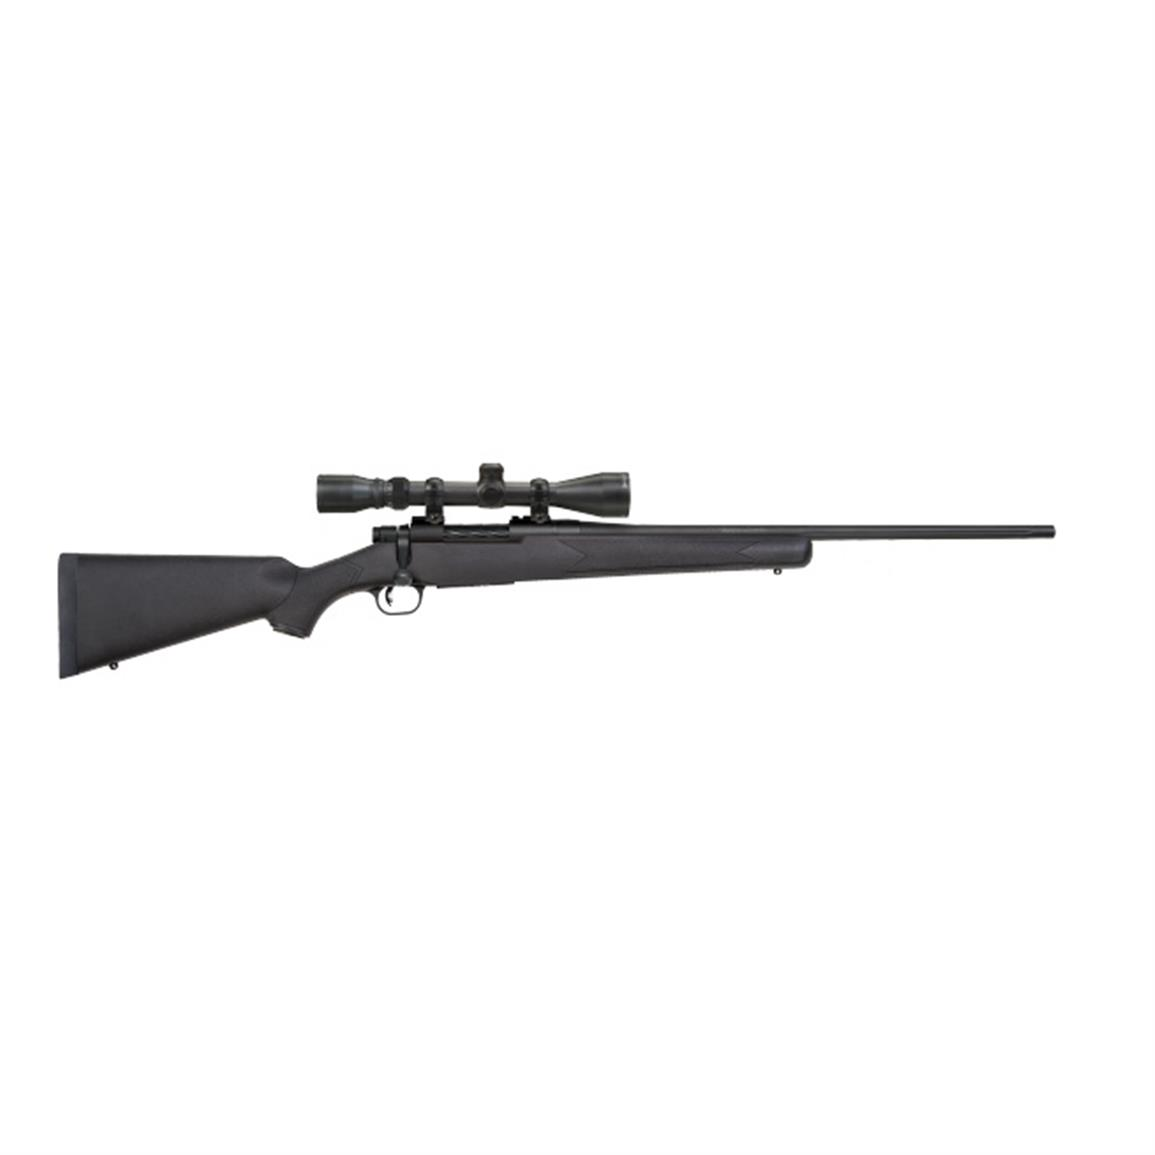 "Mossberg Patriot Combo, Bolt Action, .30-06 Springfield, 22"" Barrel, 3-9x40mm Scope, 5 Rounds"